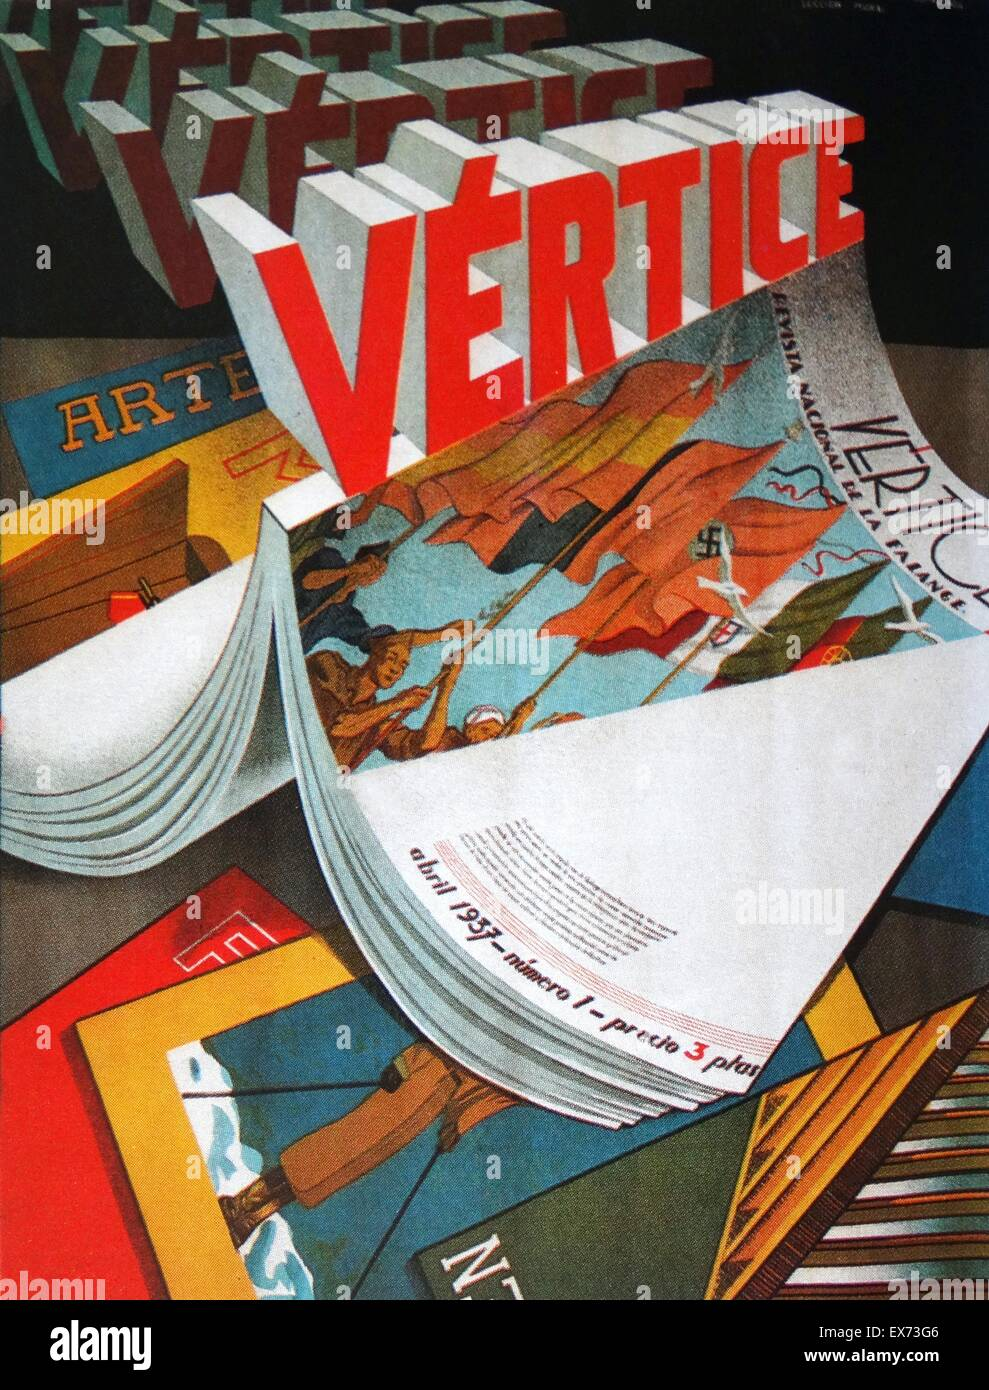 Advert for 'vertice' a Fascist Falange publication, during the Spanish Civil War - Stock Image